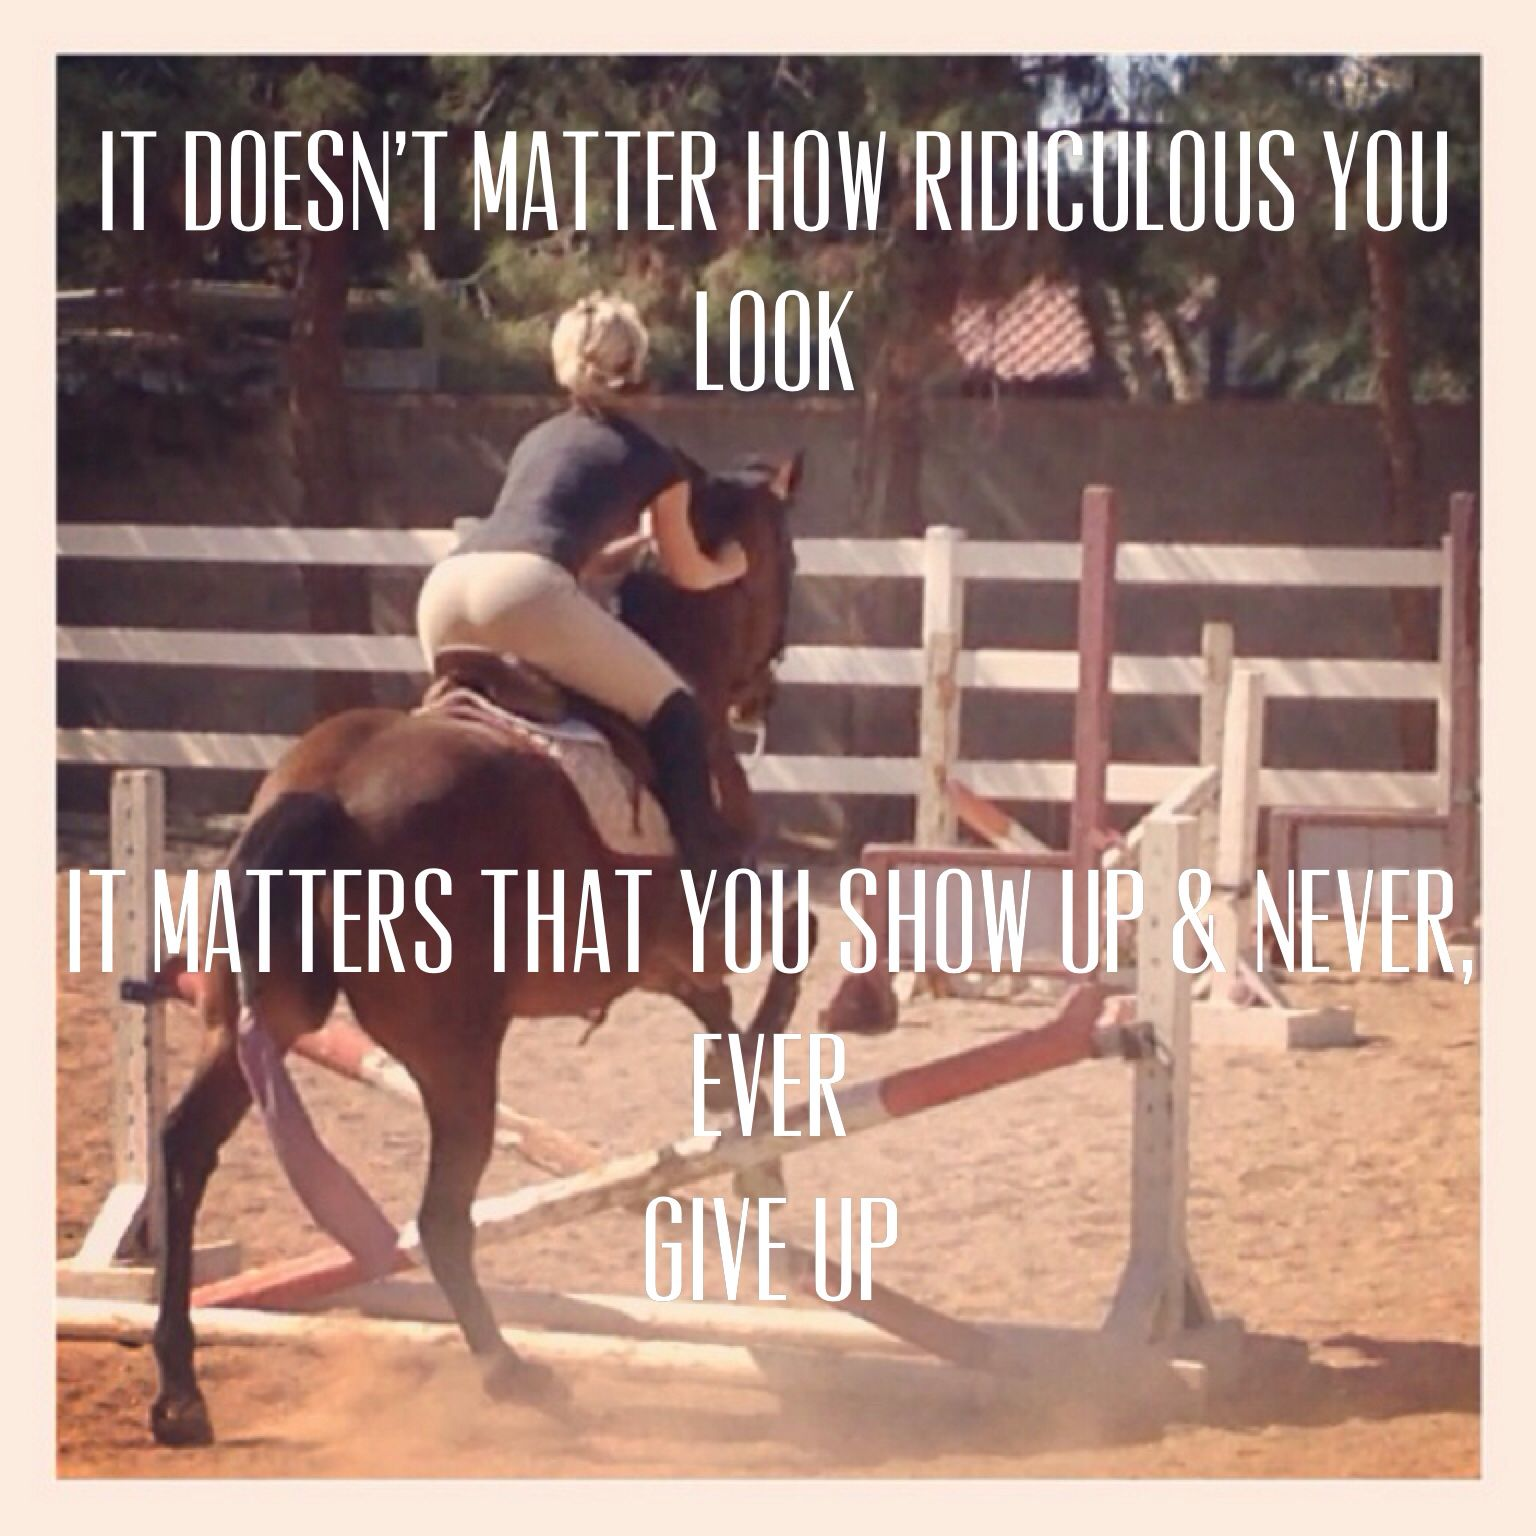 Never give up: Equestrian quote Advice | A Horse is a Horse ...